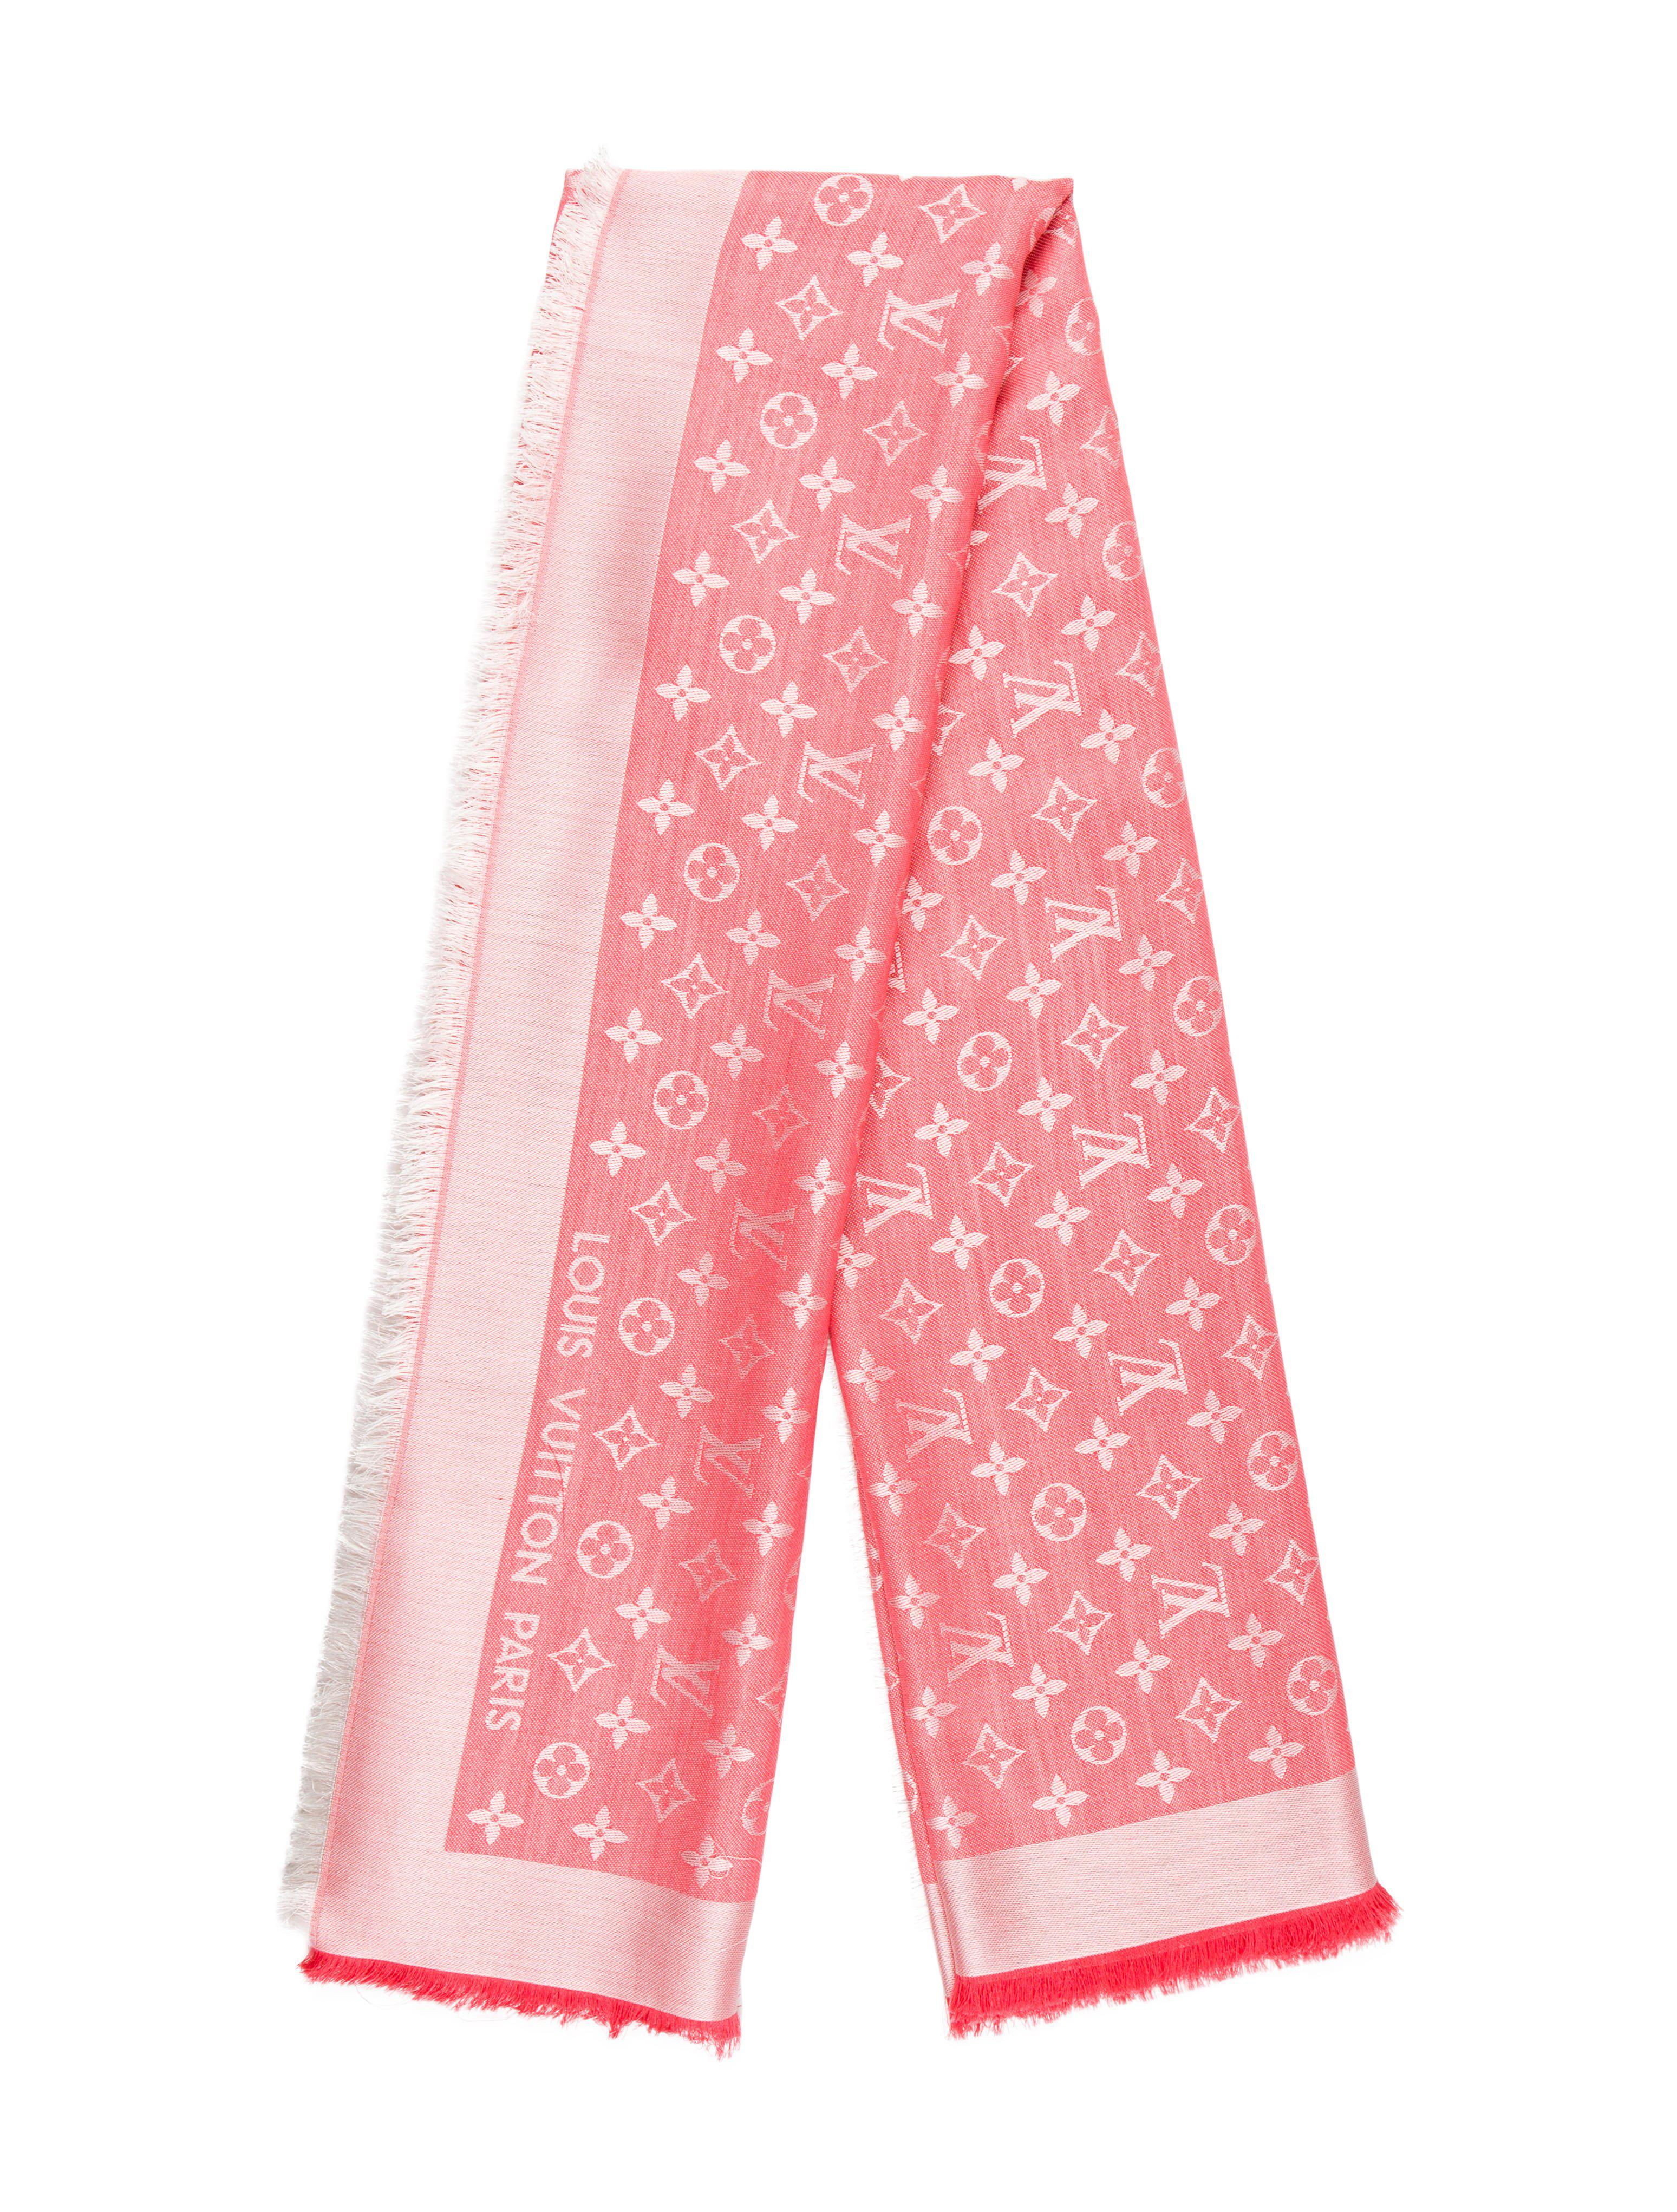 Lyst - Louis Vuitton Monogram Shawl in Pink 577303a6e05